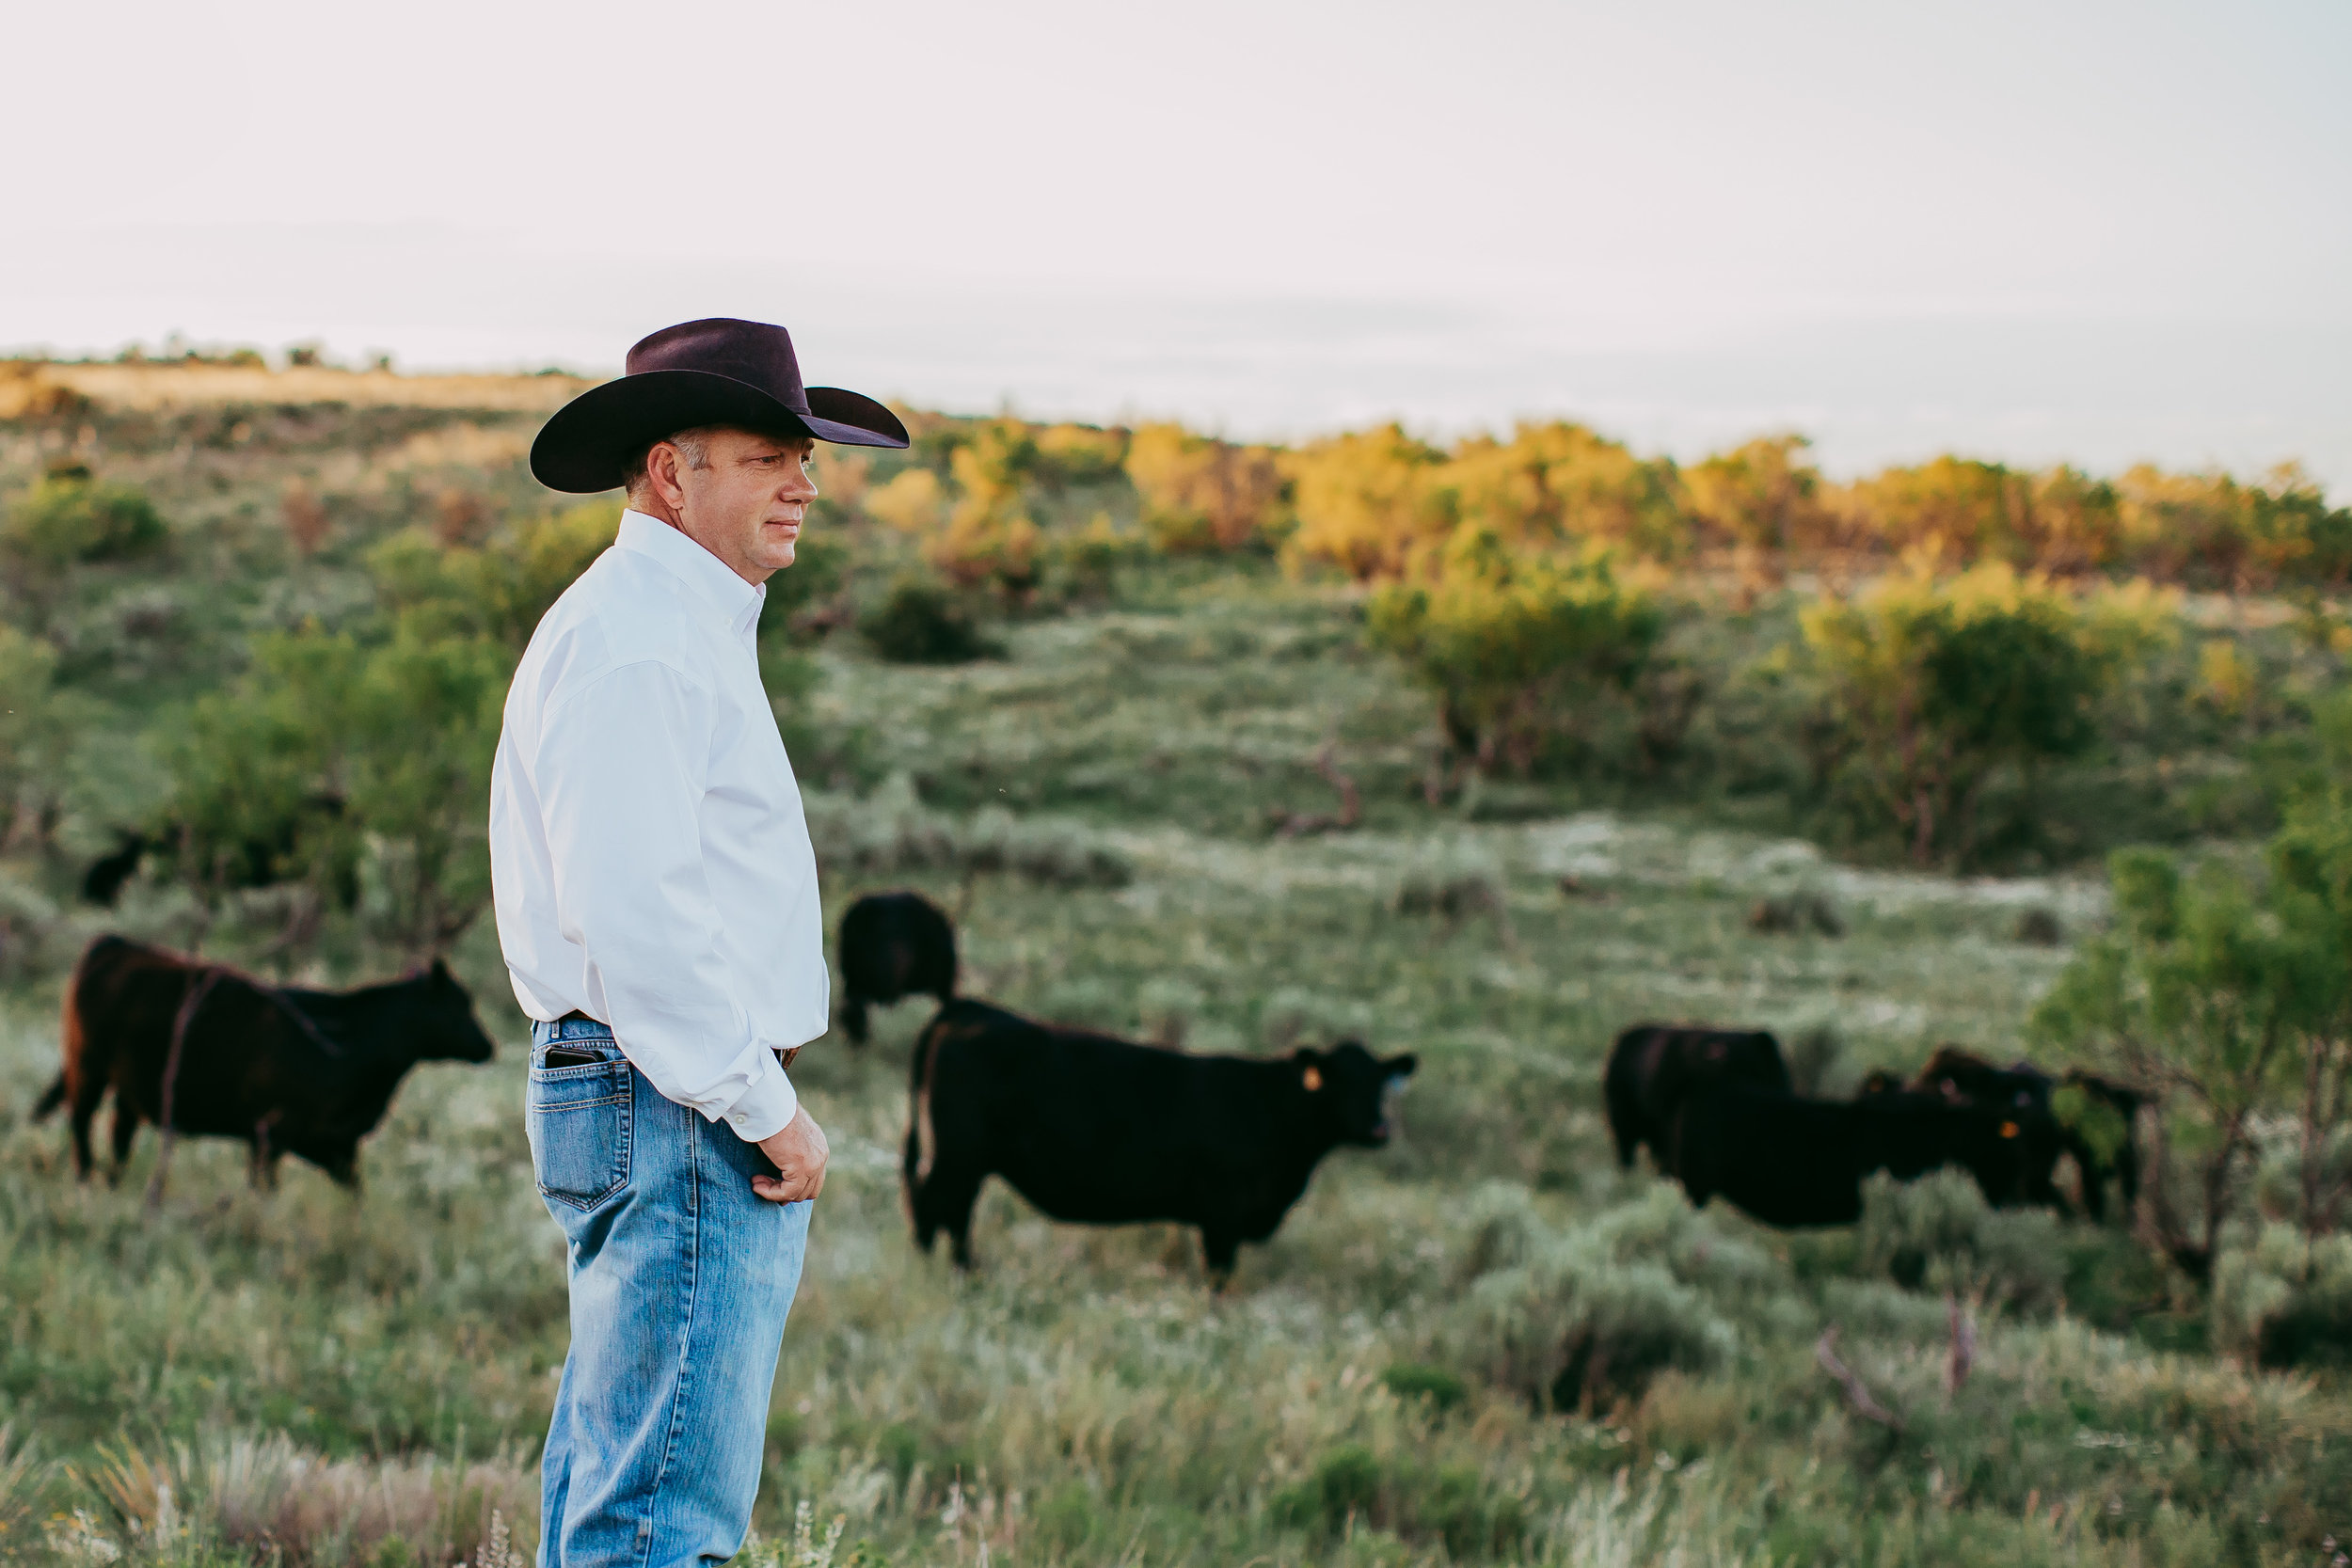 Dad hard at work looking over his cattle on his family ranch in black cowboy hat #tealawardphotography #texasfamilyphotographer #amarillophotographer #amarillofamilyphotographer #lifestylephotography #emotionalphotography #familyphotosoot #family #lovingsiblings #purejoy #familyphotos #familyphotographer #greatoutdoors